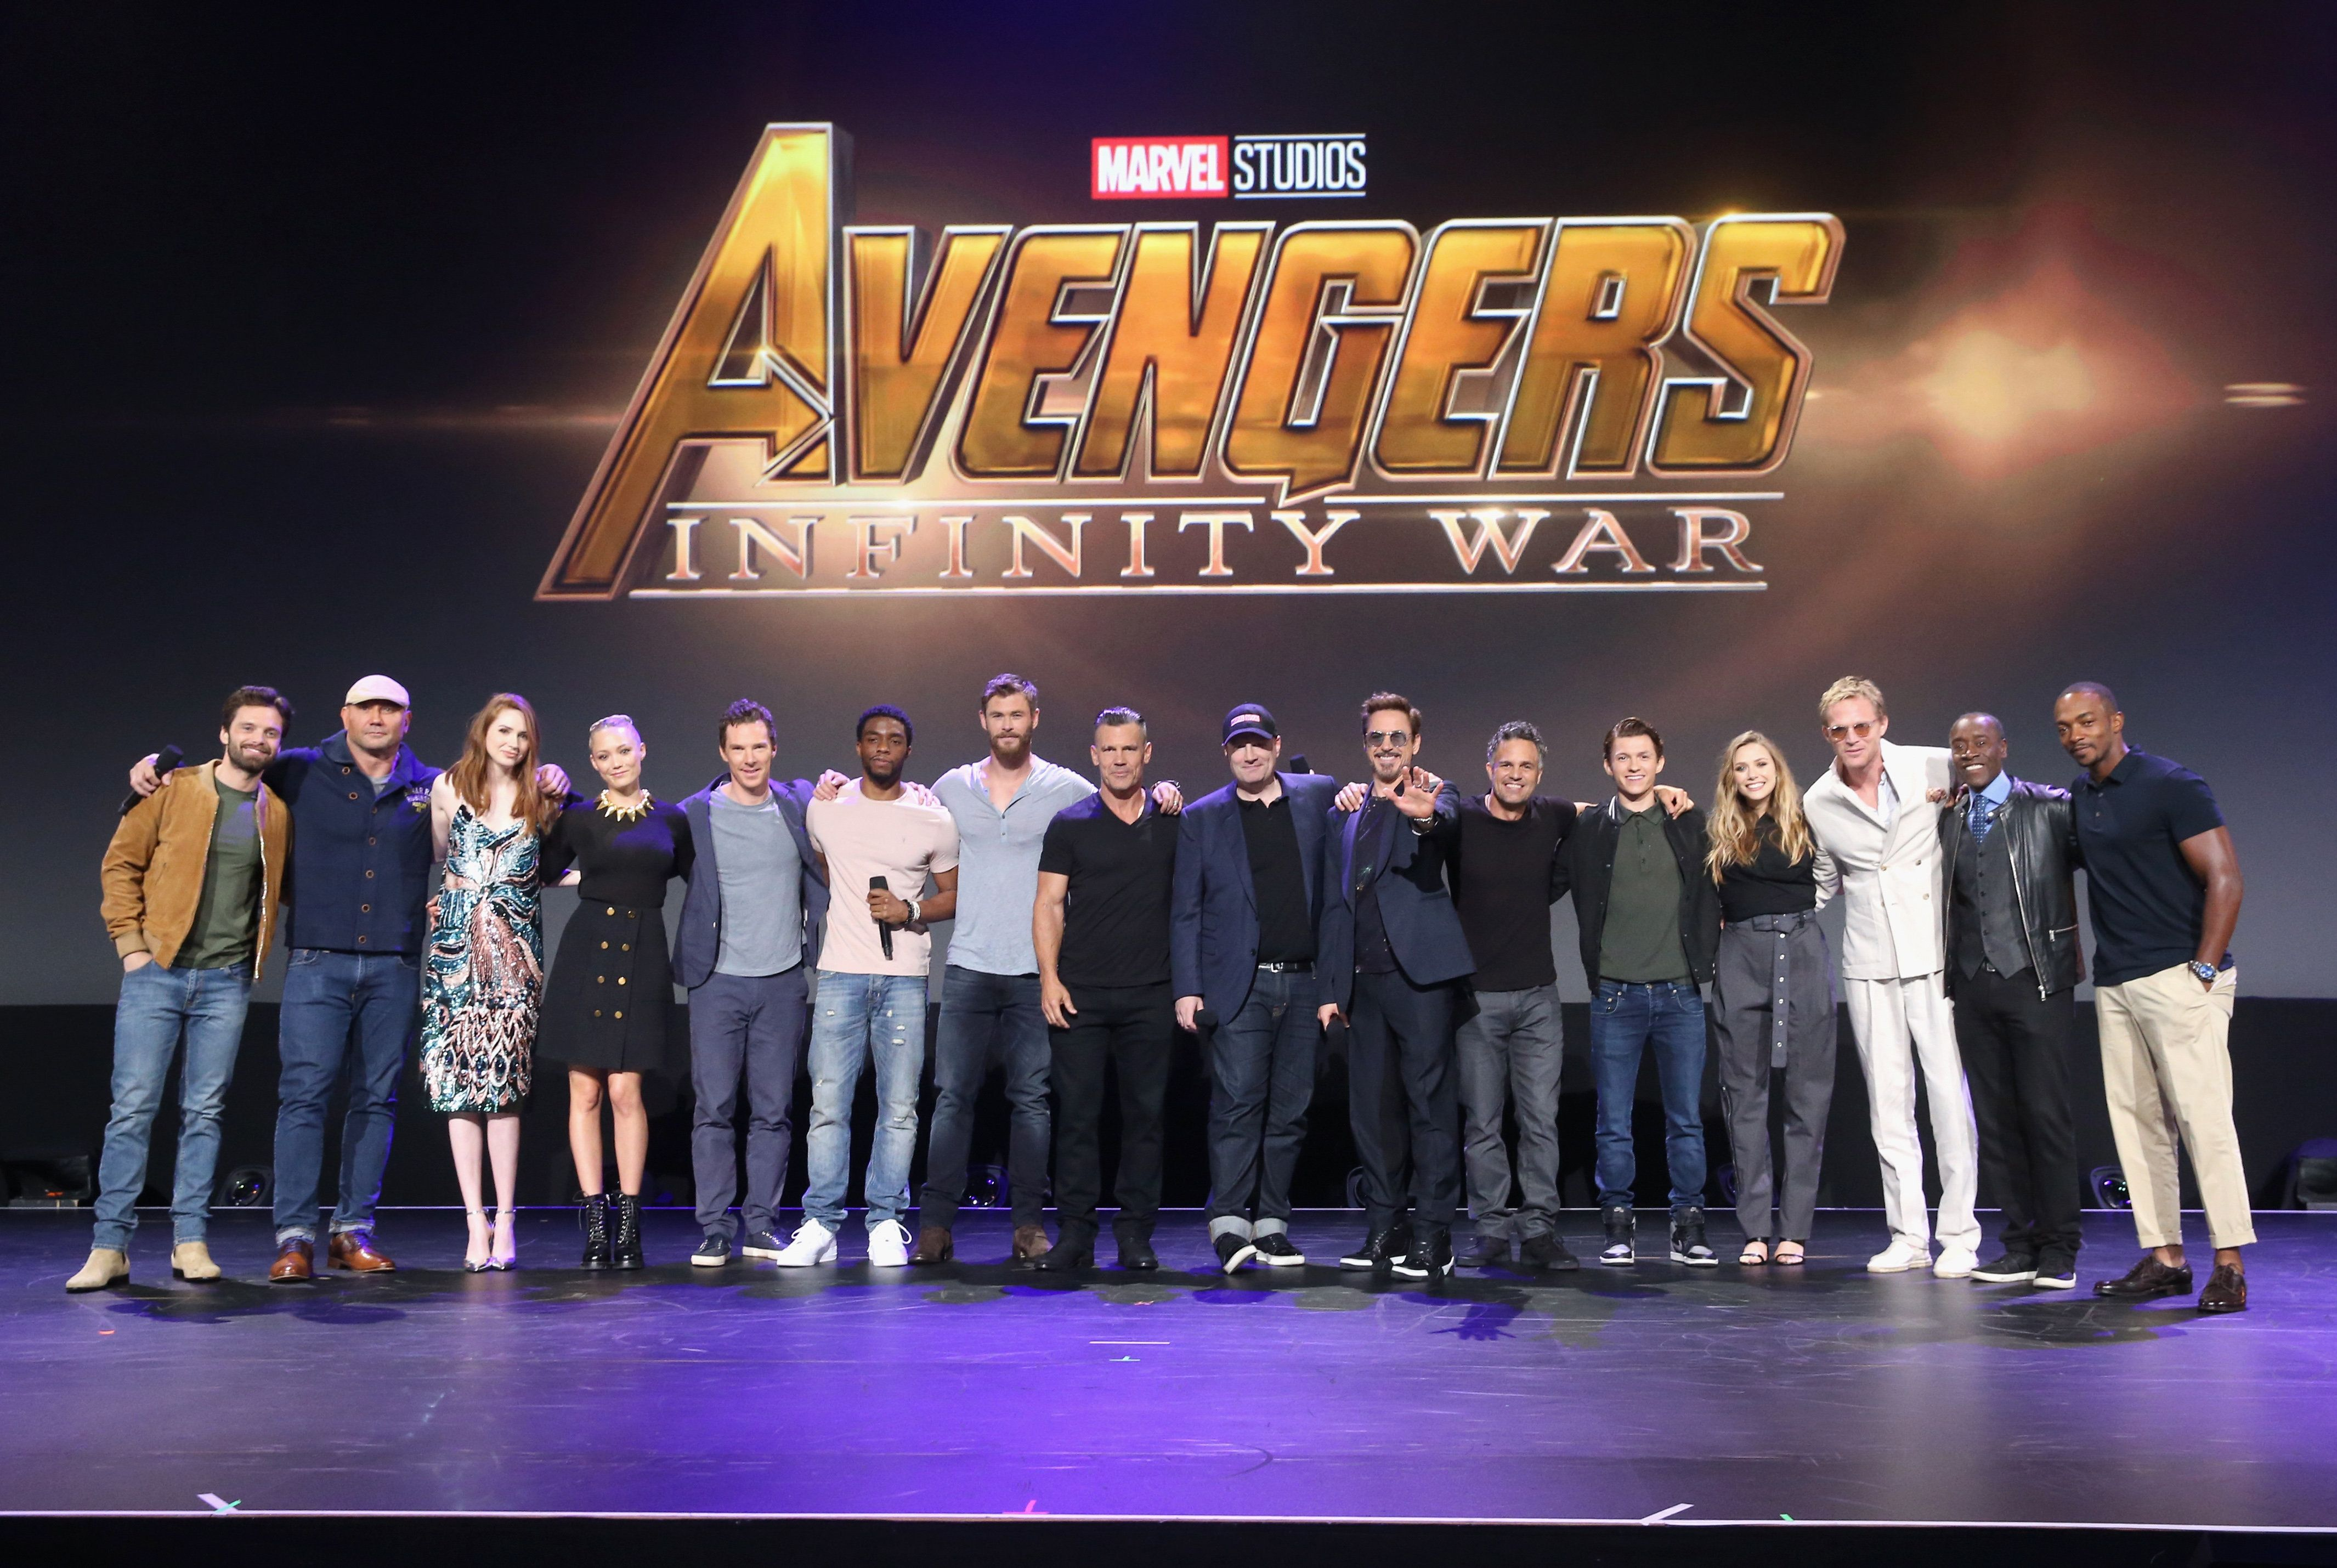 ANAHEIM, CA - JULY 15:  (L-R) Actors Sebastian Stan, Dave Bautista, Karen Gillan, Pom Klementieff, Benedict Cumberbatch, Chadwick Boseman, Josh Brolin, and Chris Hemsworth, producer Kevin Feige, and actors Robert Downey Jr., Mark Ruffalo, Tom Holland, Elizabeth Olsen, Paul Bettany, Don Cheadle, and Anthony Mackie of AVENGERS: INFINITY WAR took part today in the Walt Disney Studios live action presentation at Disney's D23 EXPO 2017 in Anaheim, Calif. AVENGERS: INFINITY WAR will be released in U.S. theaters on May 4, 2018.  (Photo by Jesse Grant/Getty Images for Disney)